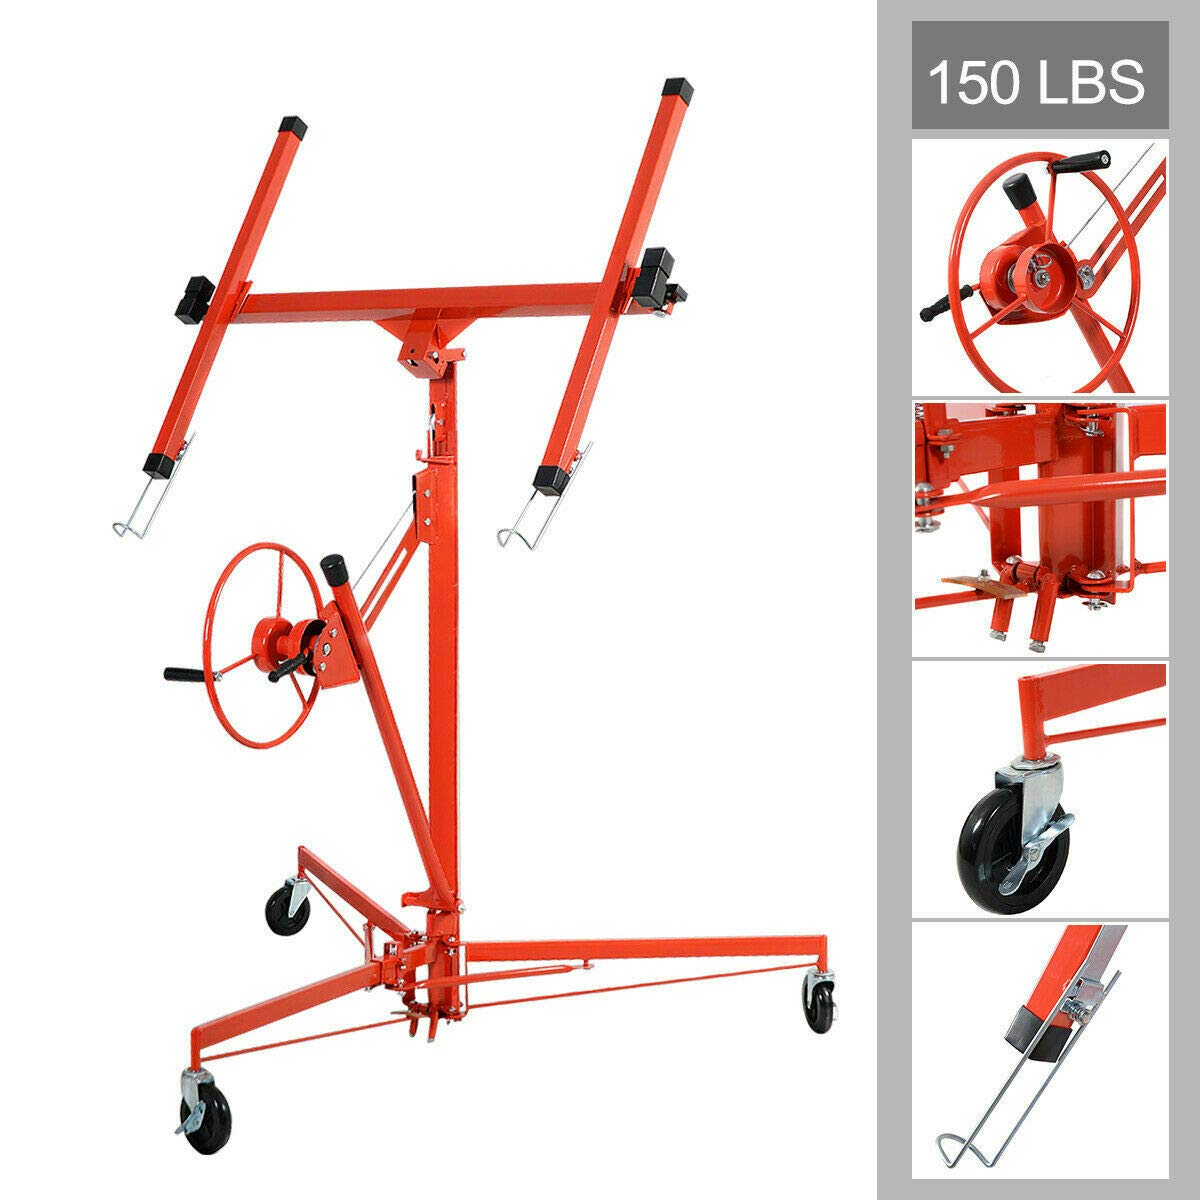 11' Drywall Lift Panel Hoist Dry Wall Jack Rolling Caster Lifter Lockable New